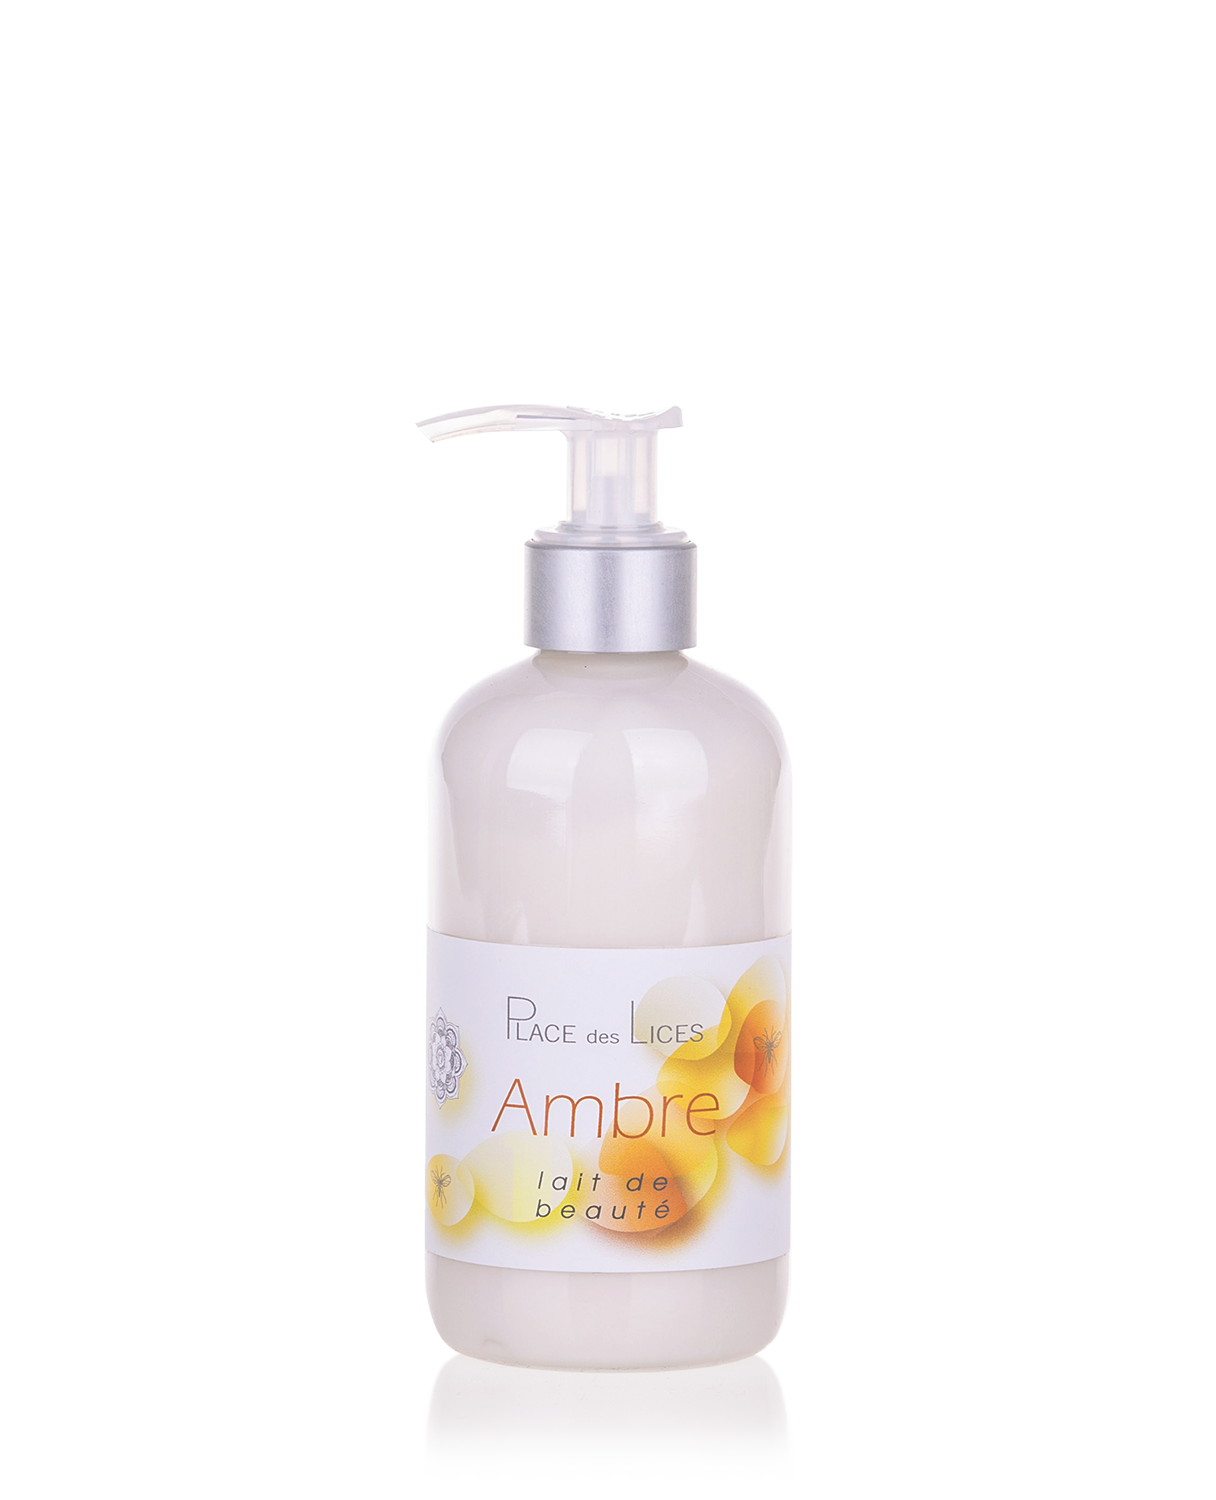 Ambre body lotion Place des Lices